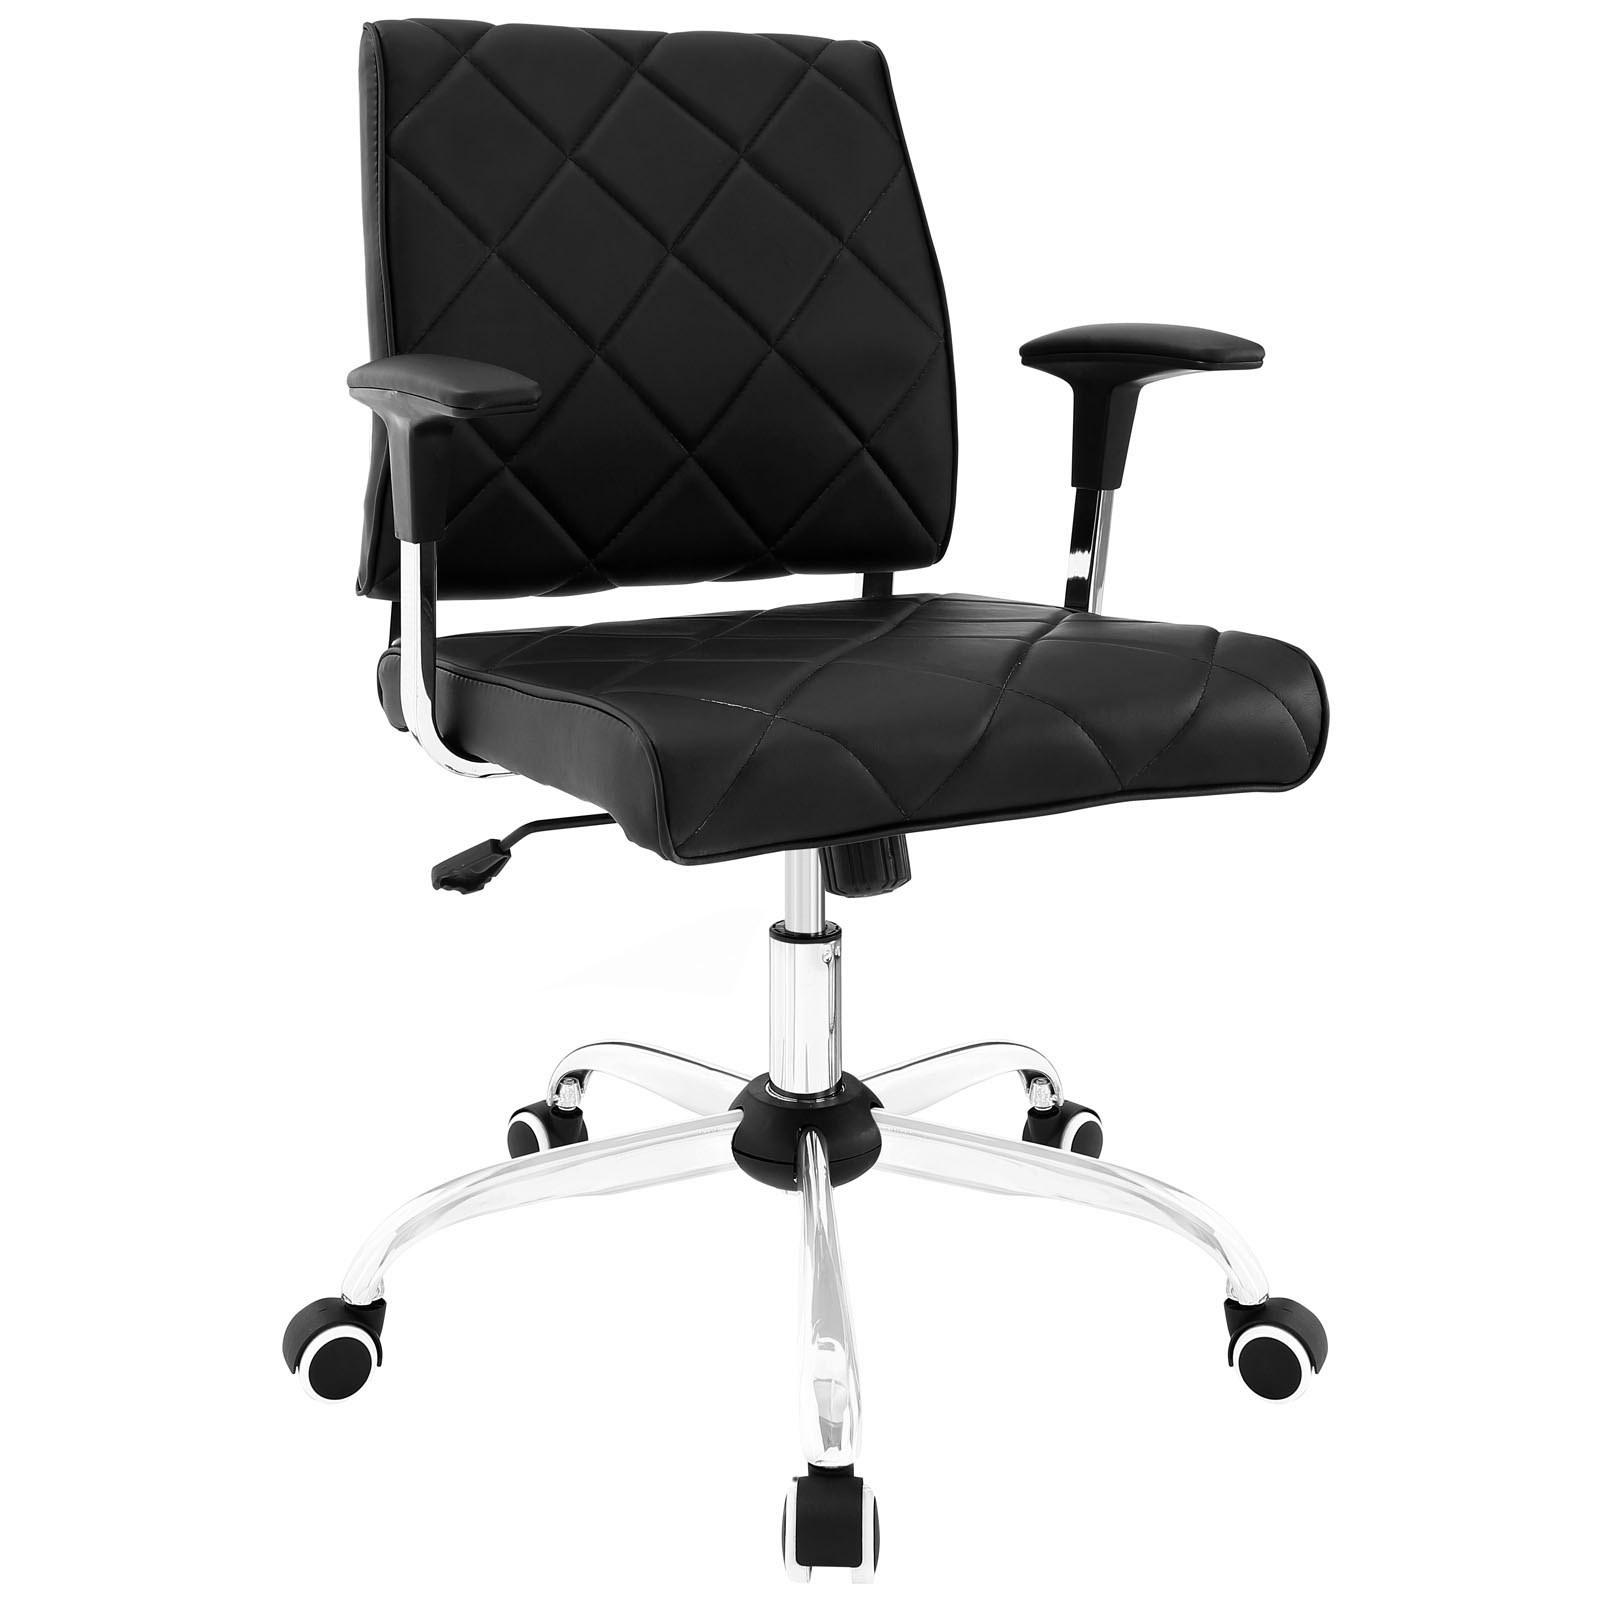 cheap leather office chair discount chairs office furniture chairs